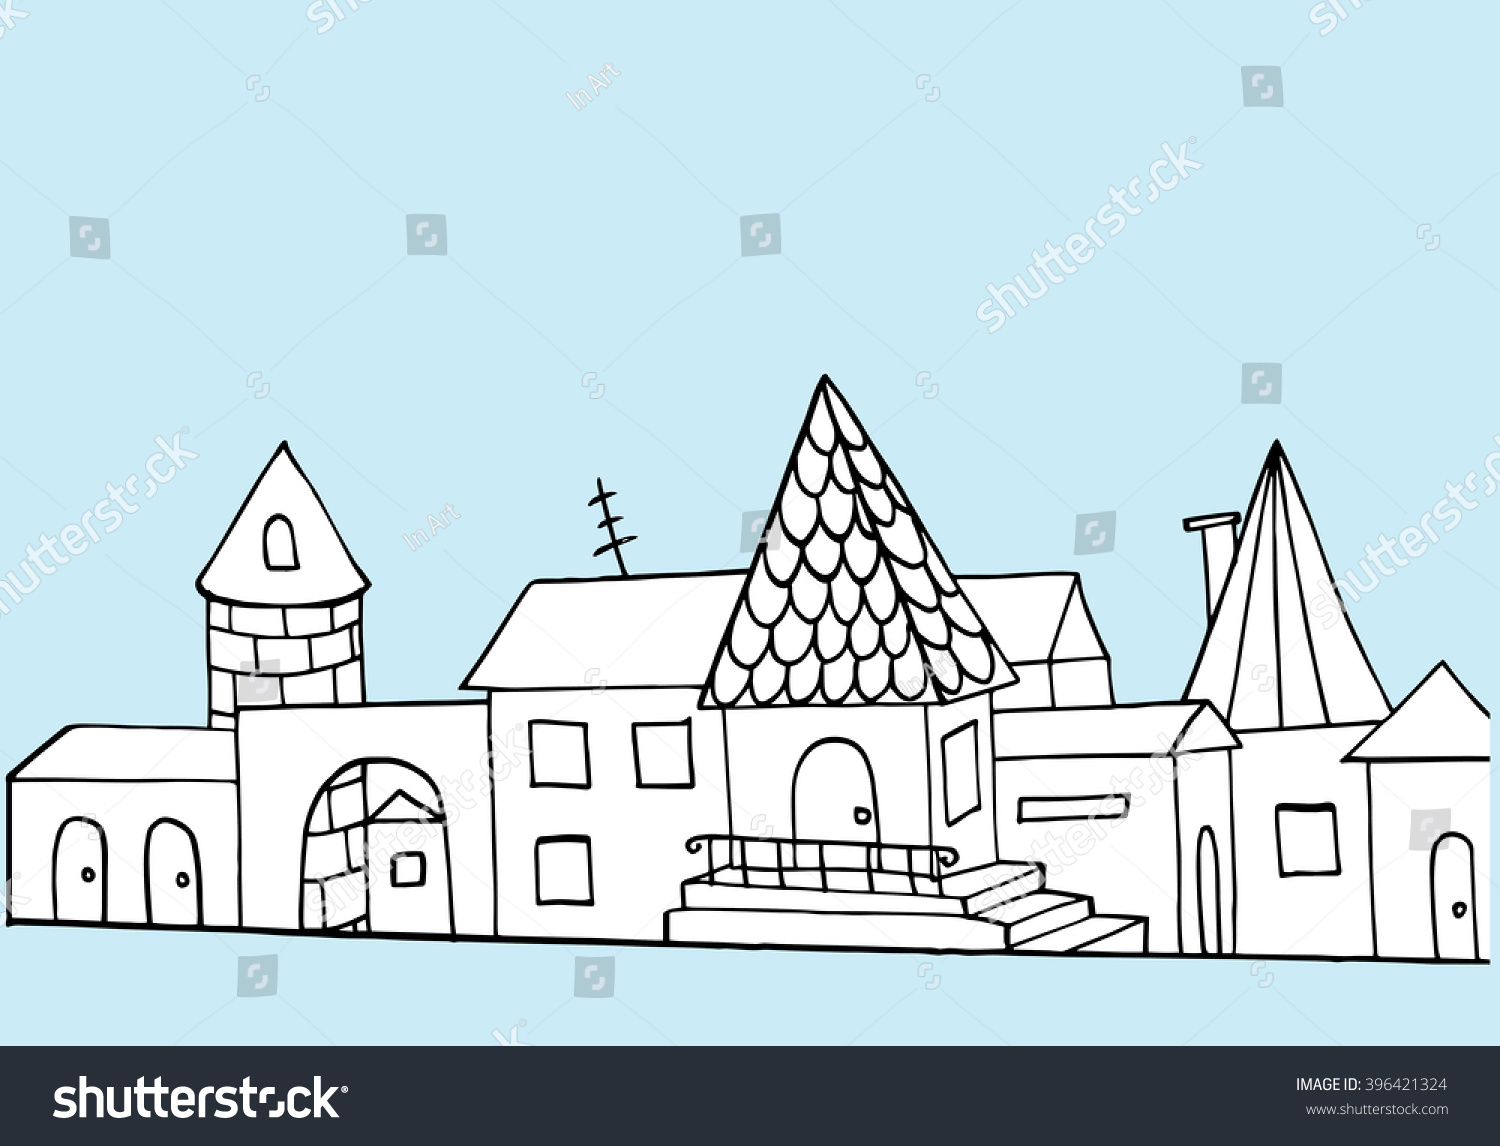 Line Art Home : Decorative home stylized city street cottages stock vector